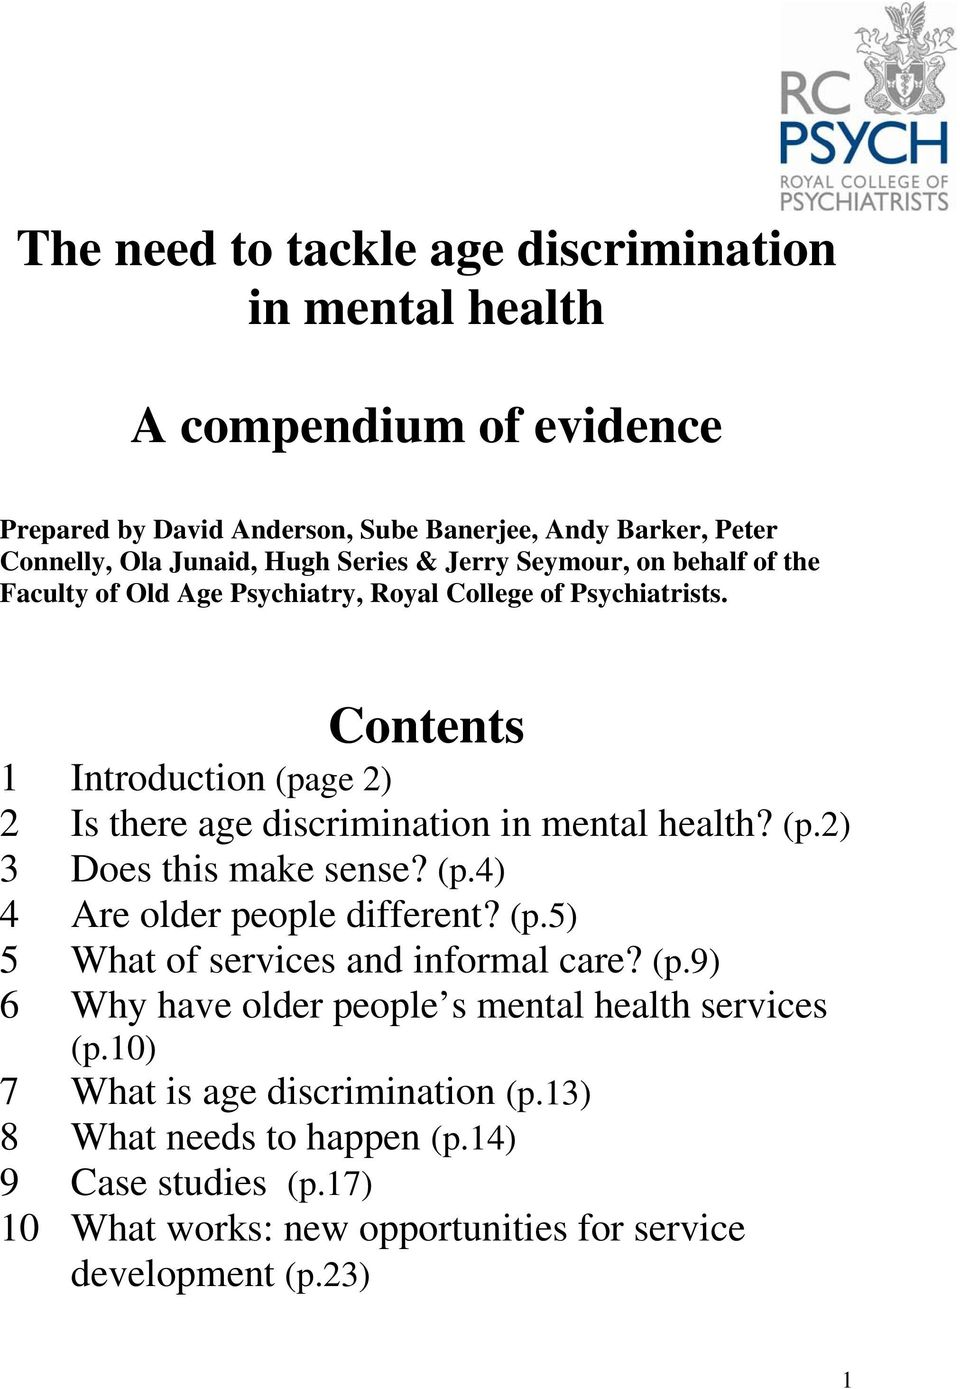 Contents 1 Introduction (page 2) 2 Is there age discrimination in mental health? (p.2) 3 Does this make sense? (p.4) 4 Are older people different? (p.5) 5 What of services and informal care?